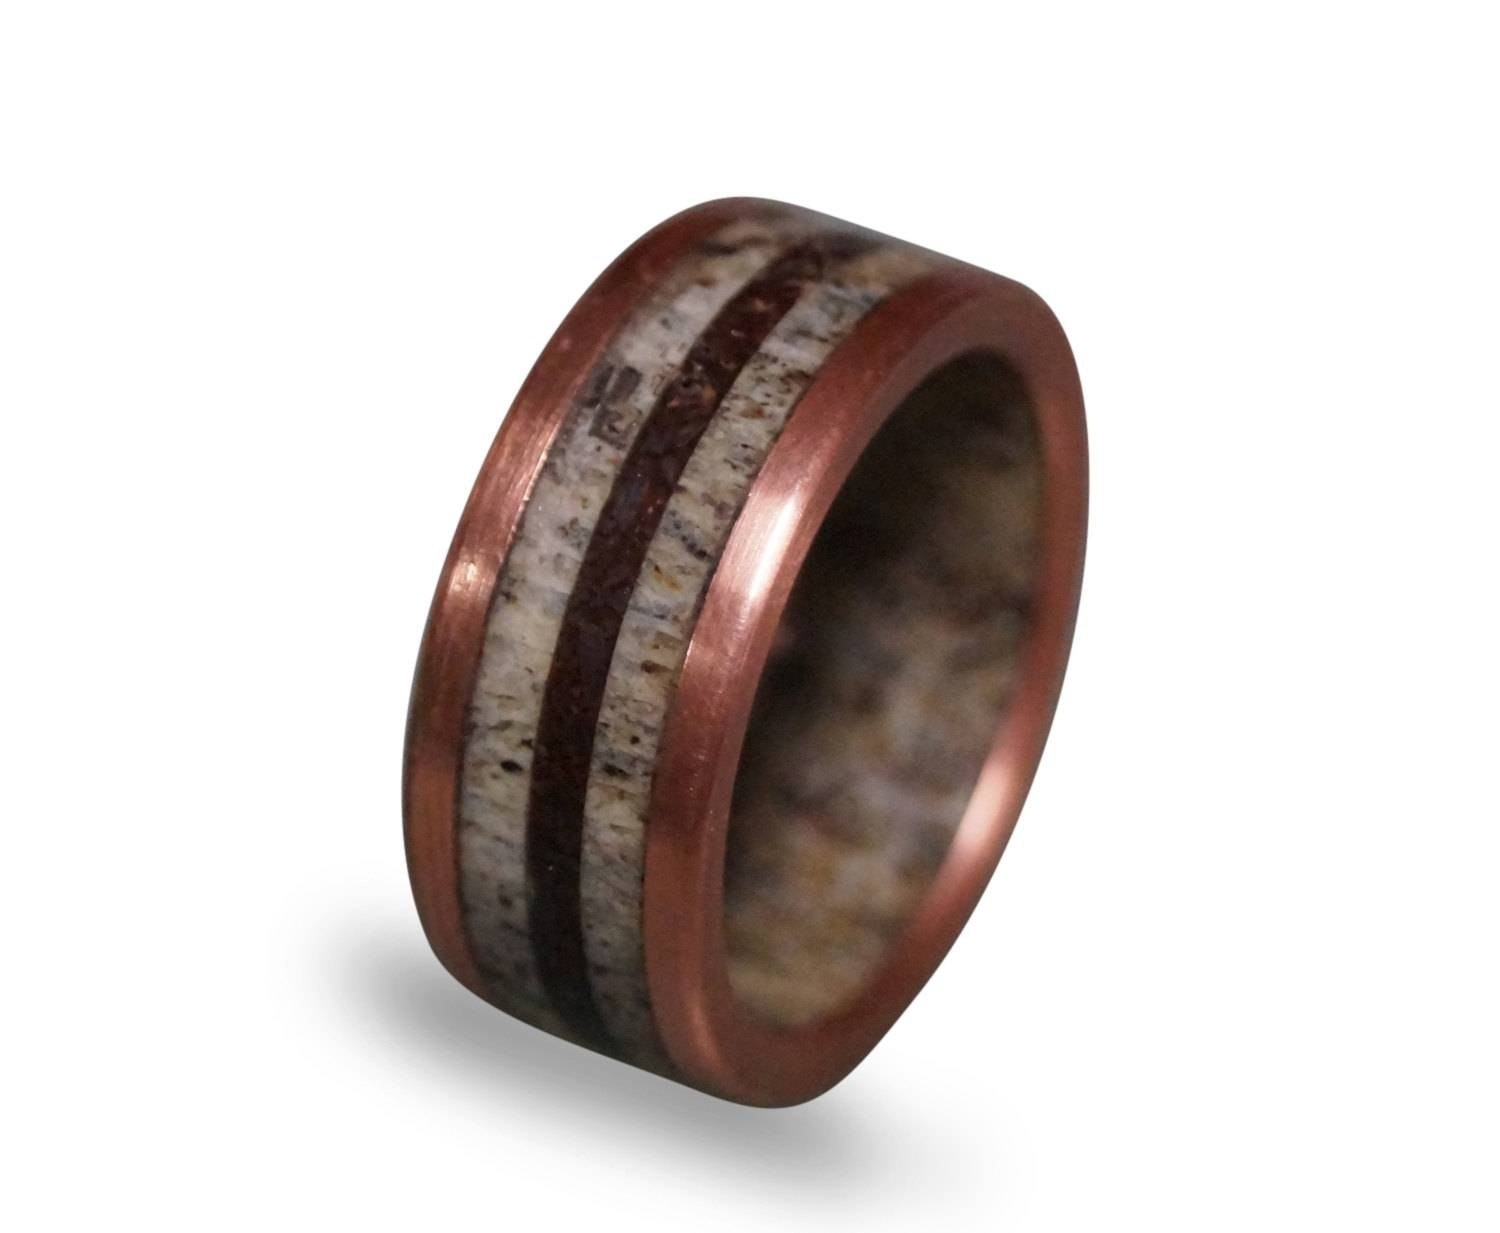 Deer Antler Ring With Patina Copper And Dinosaur Fossil Inlays Throughout Mens Wedding Bands With Deer Antlers (View 15 of 15)